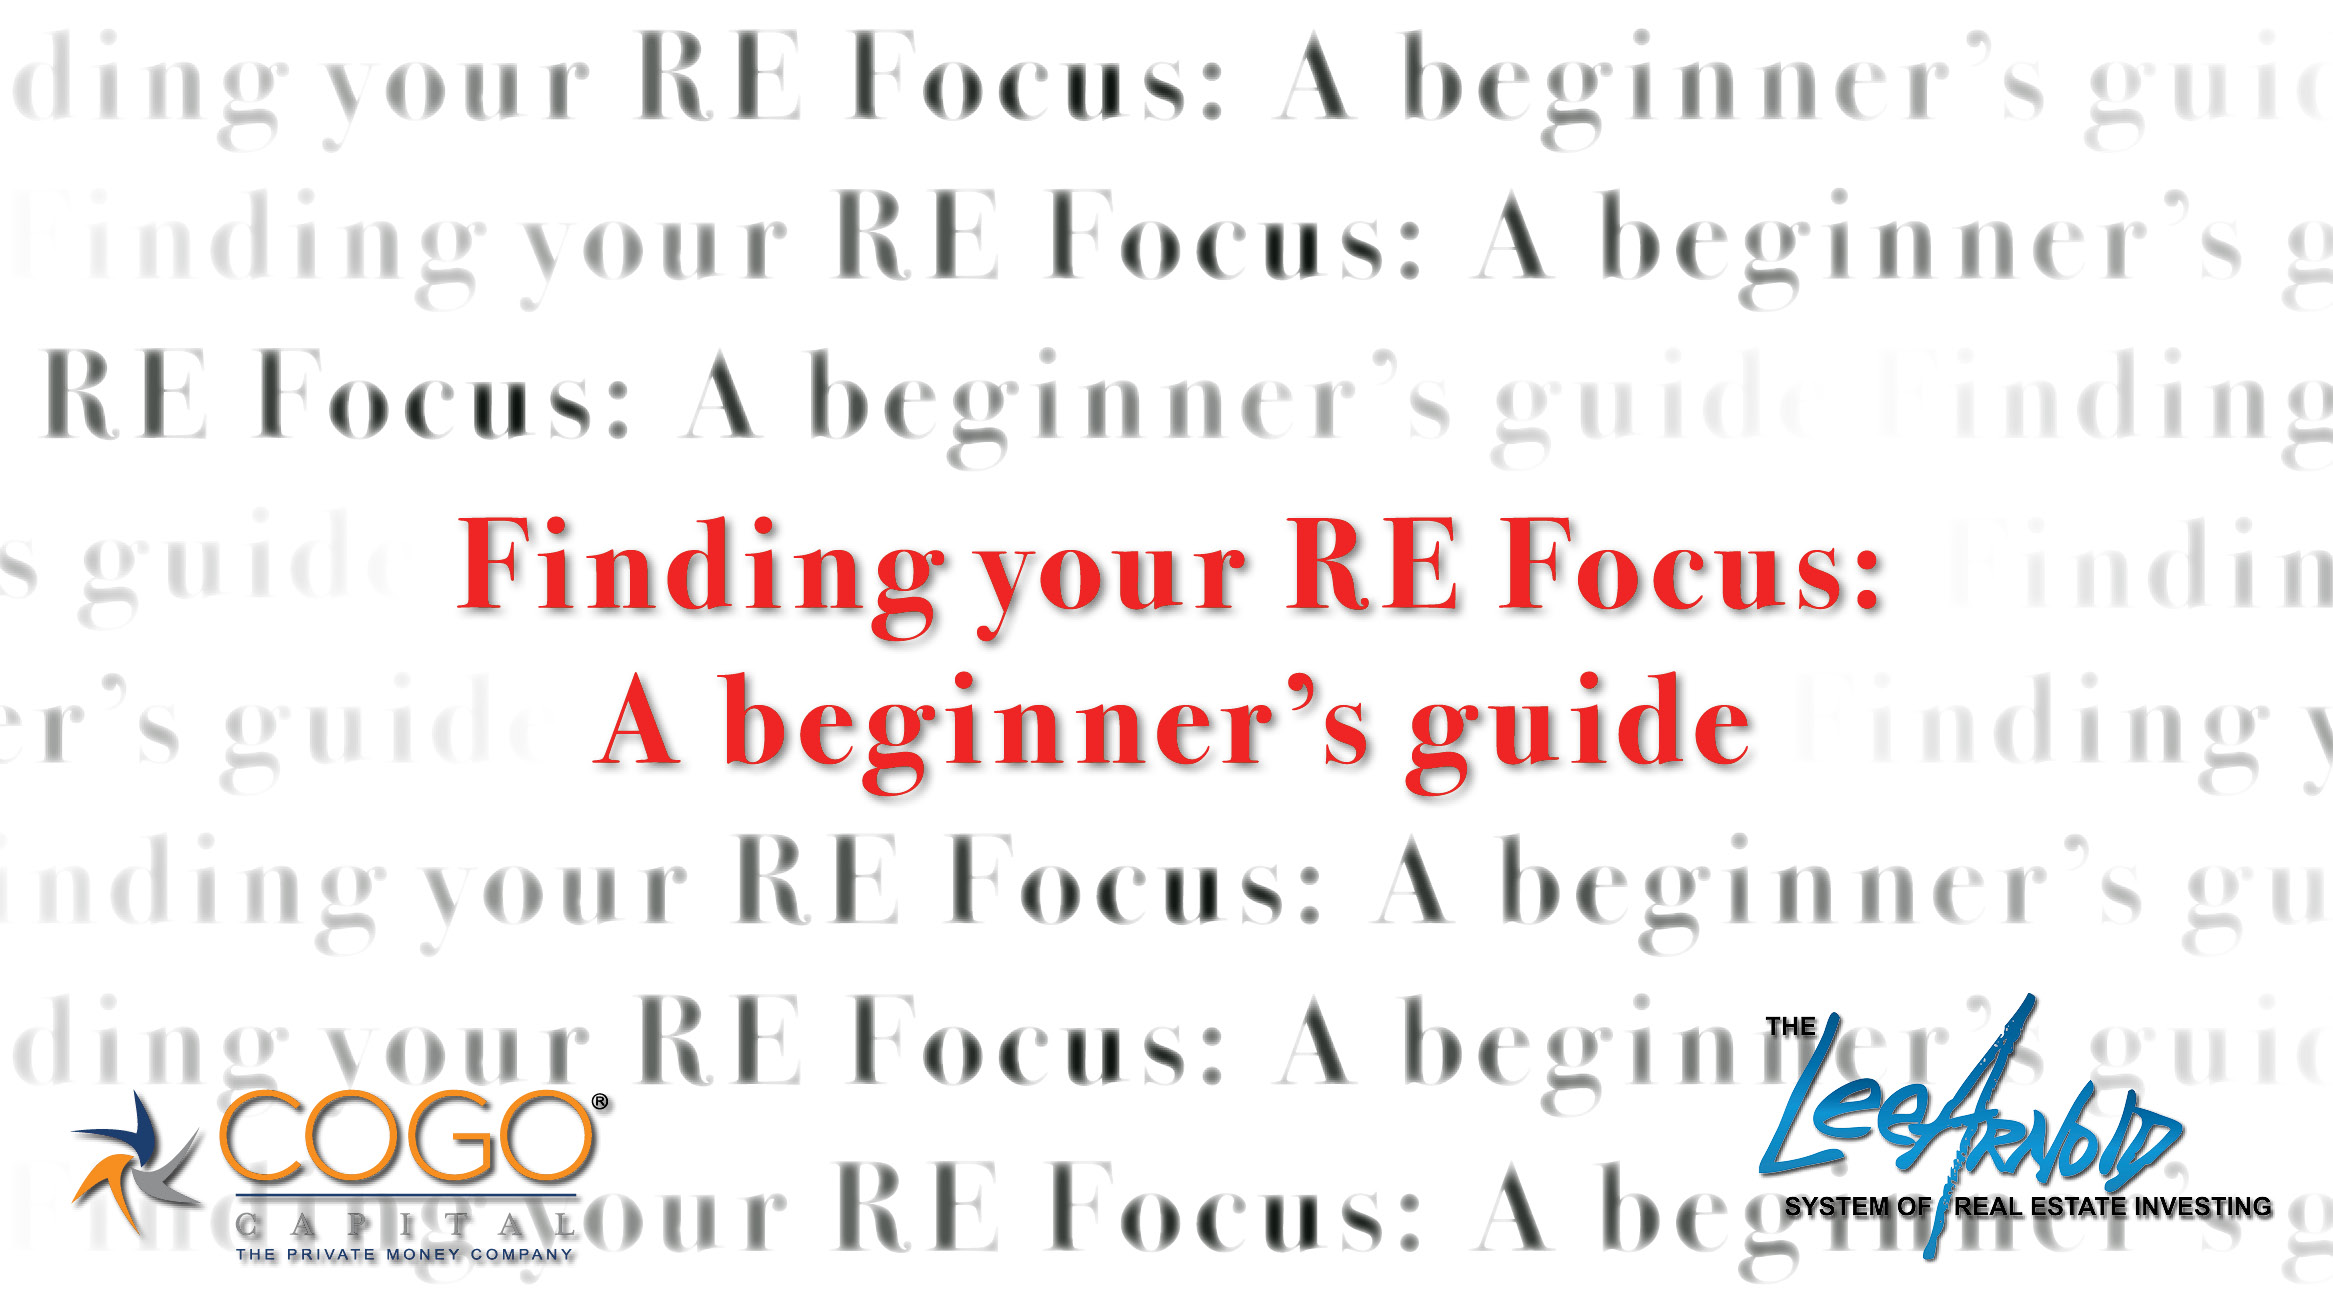 Finding your RE Focus - Cogo Capital